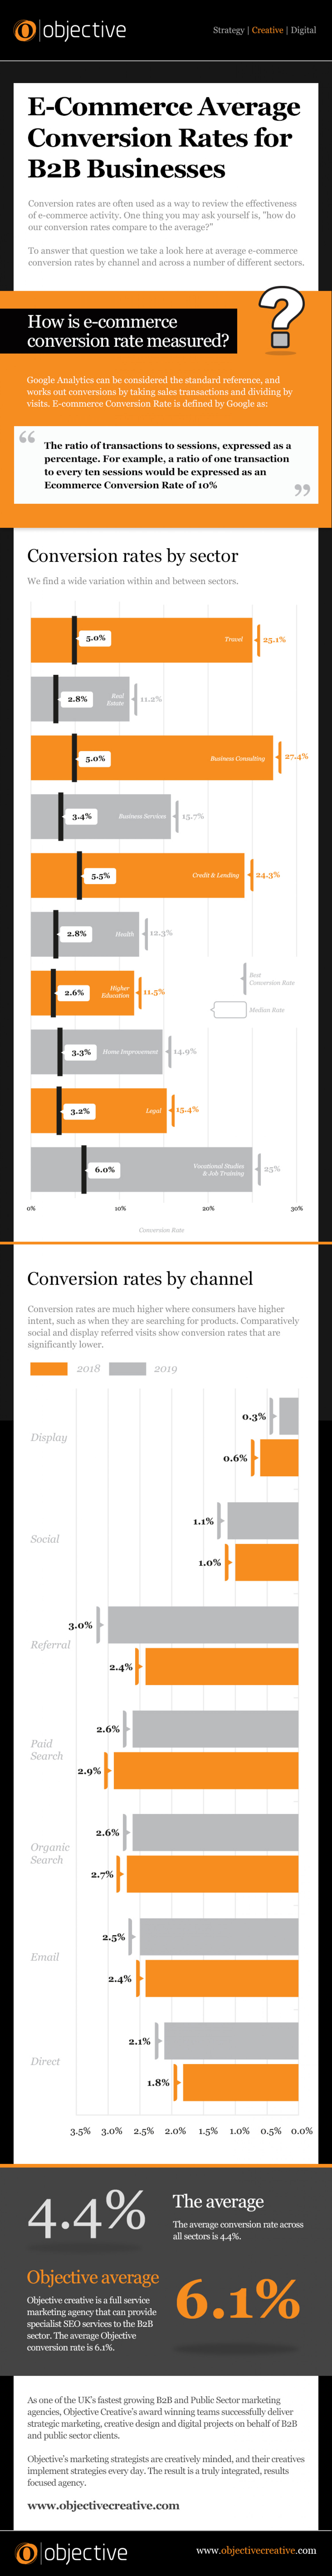 E-Commerce Average Conversion Rates for B2B Businesses Infographic